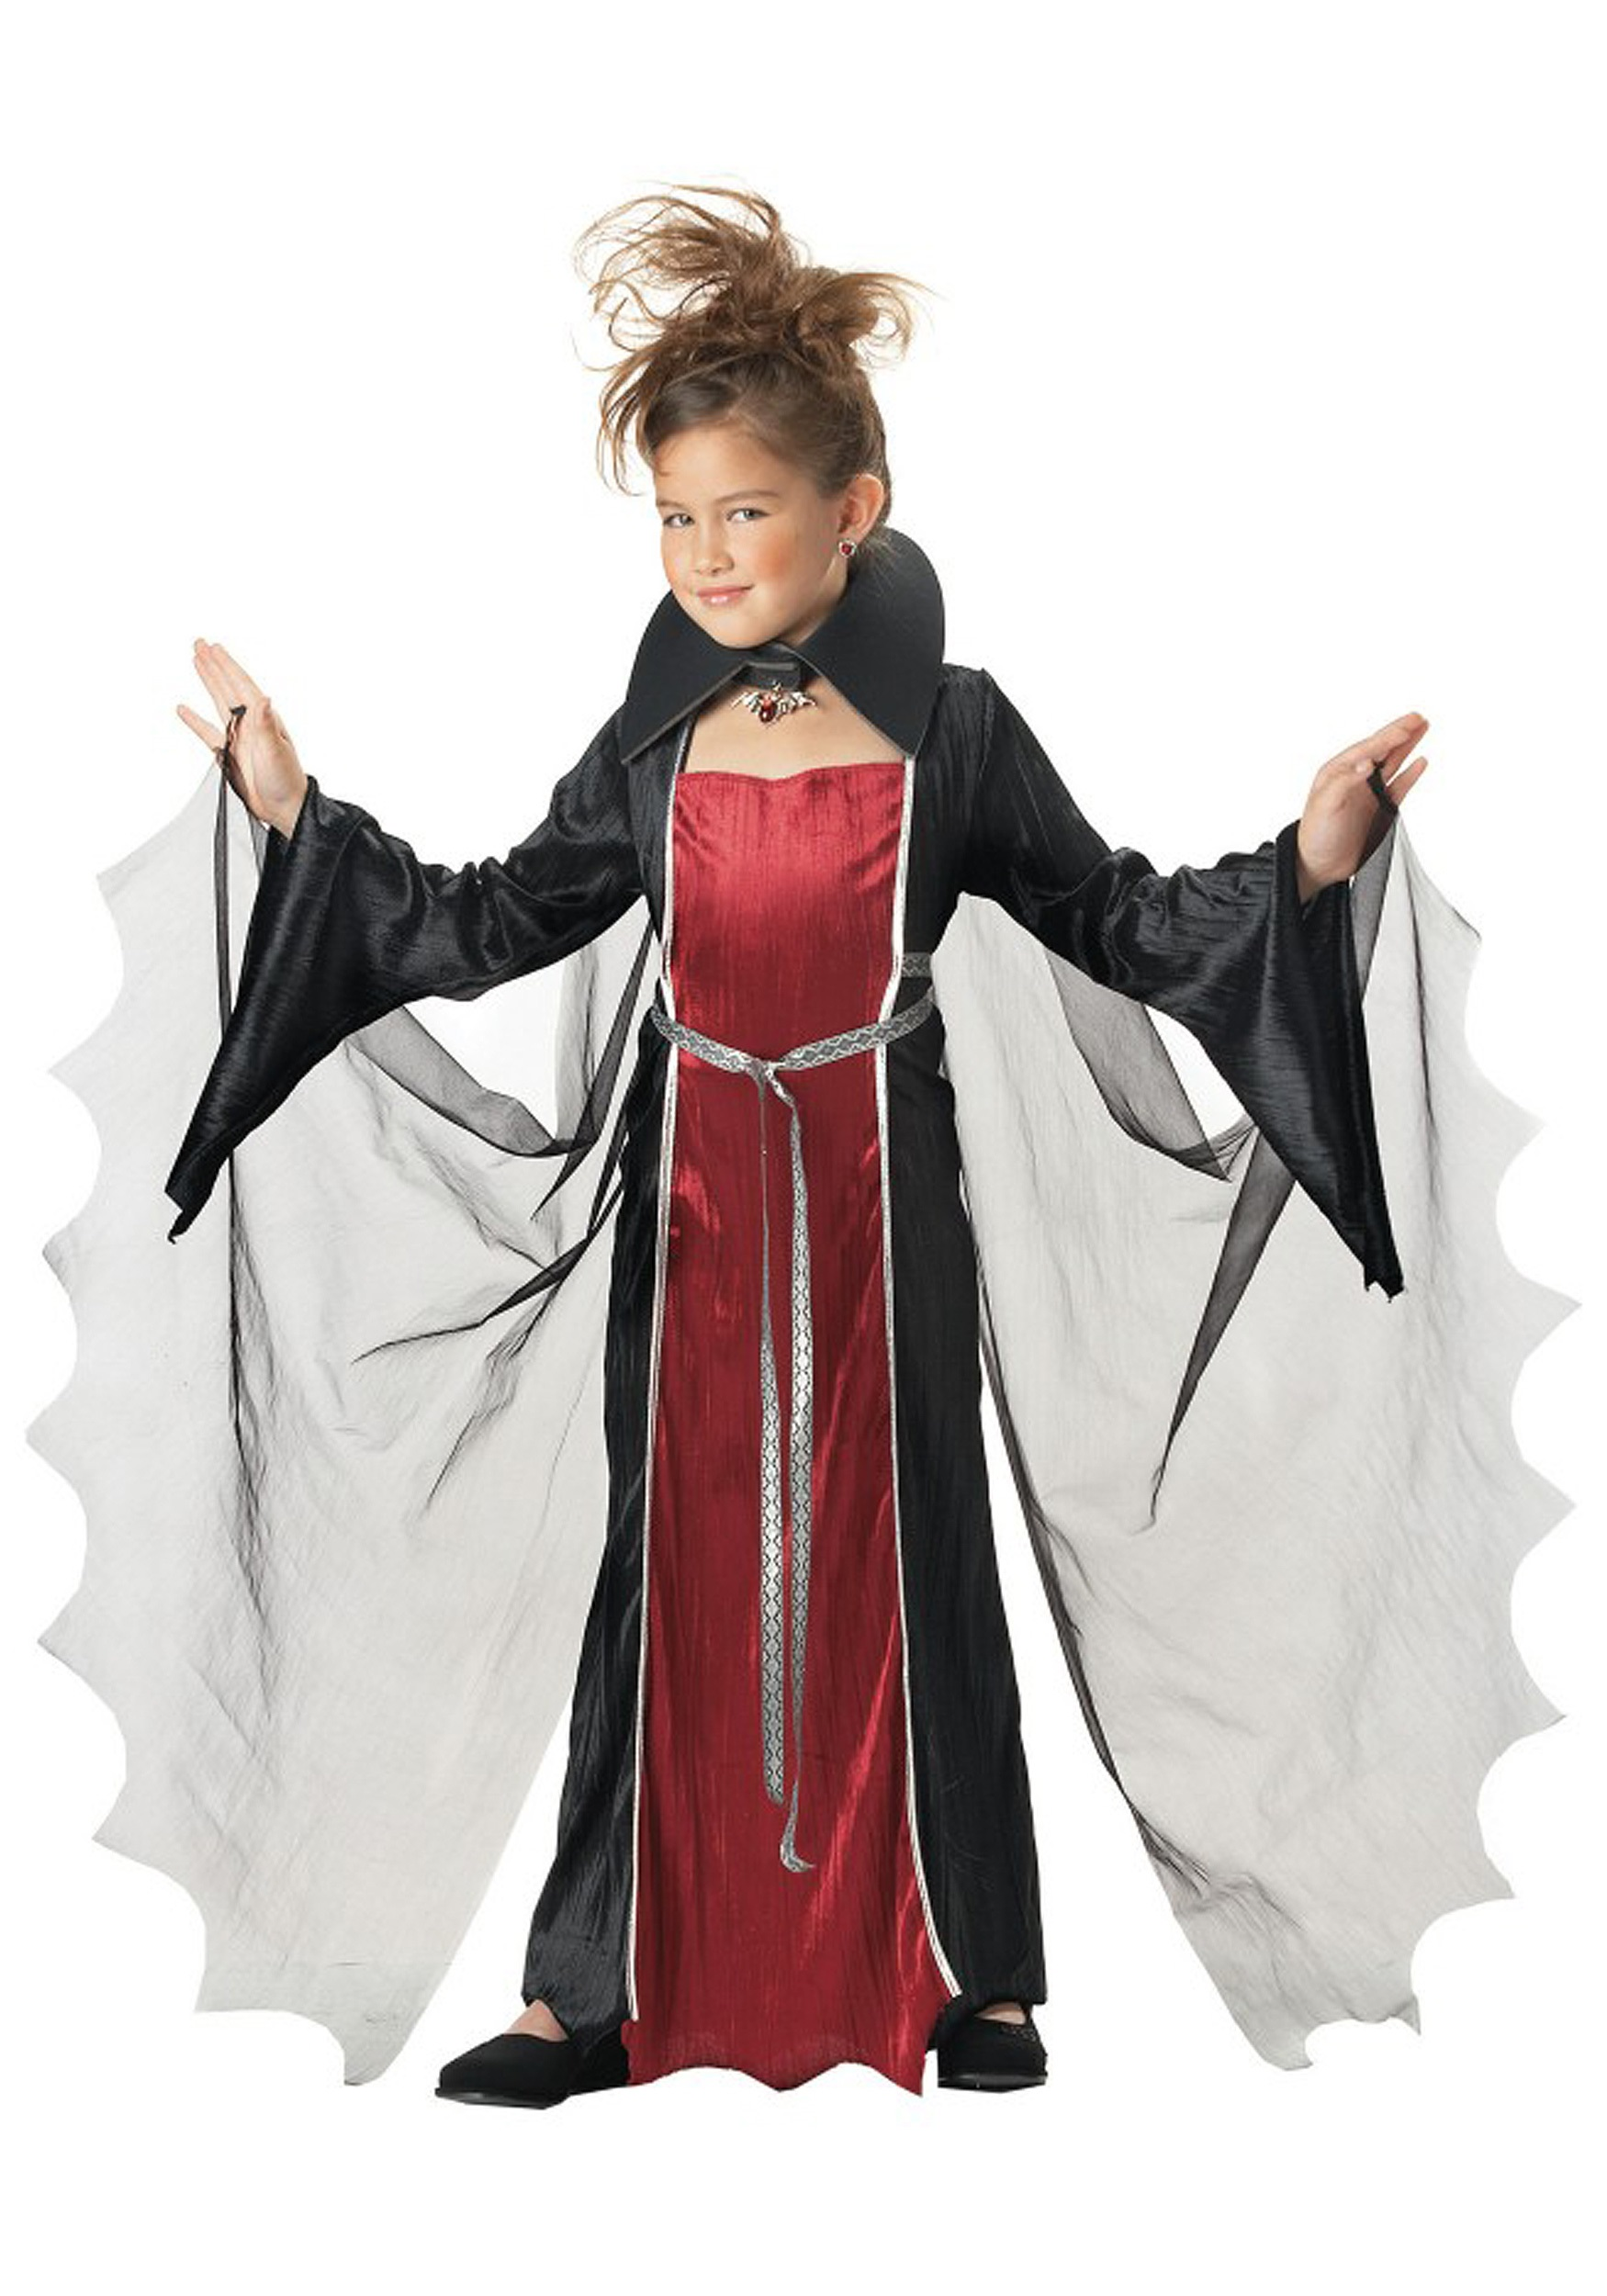 cool halloween costume ideas for women on Halloween Costume Ideas Vampire Costume Ideas Kids Vampire Costumes